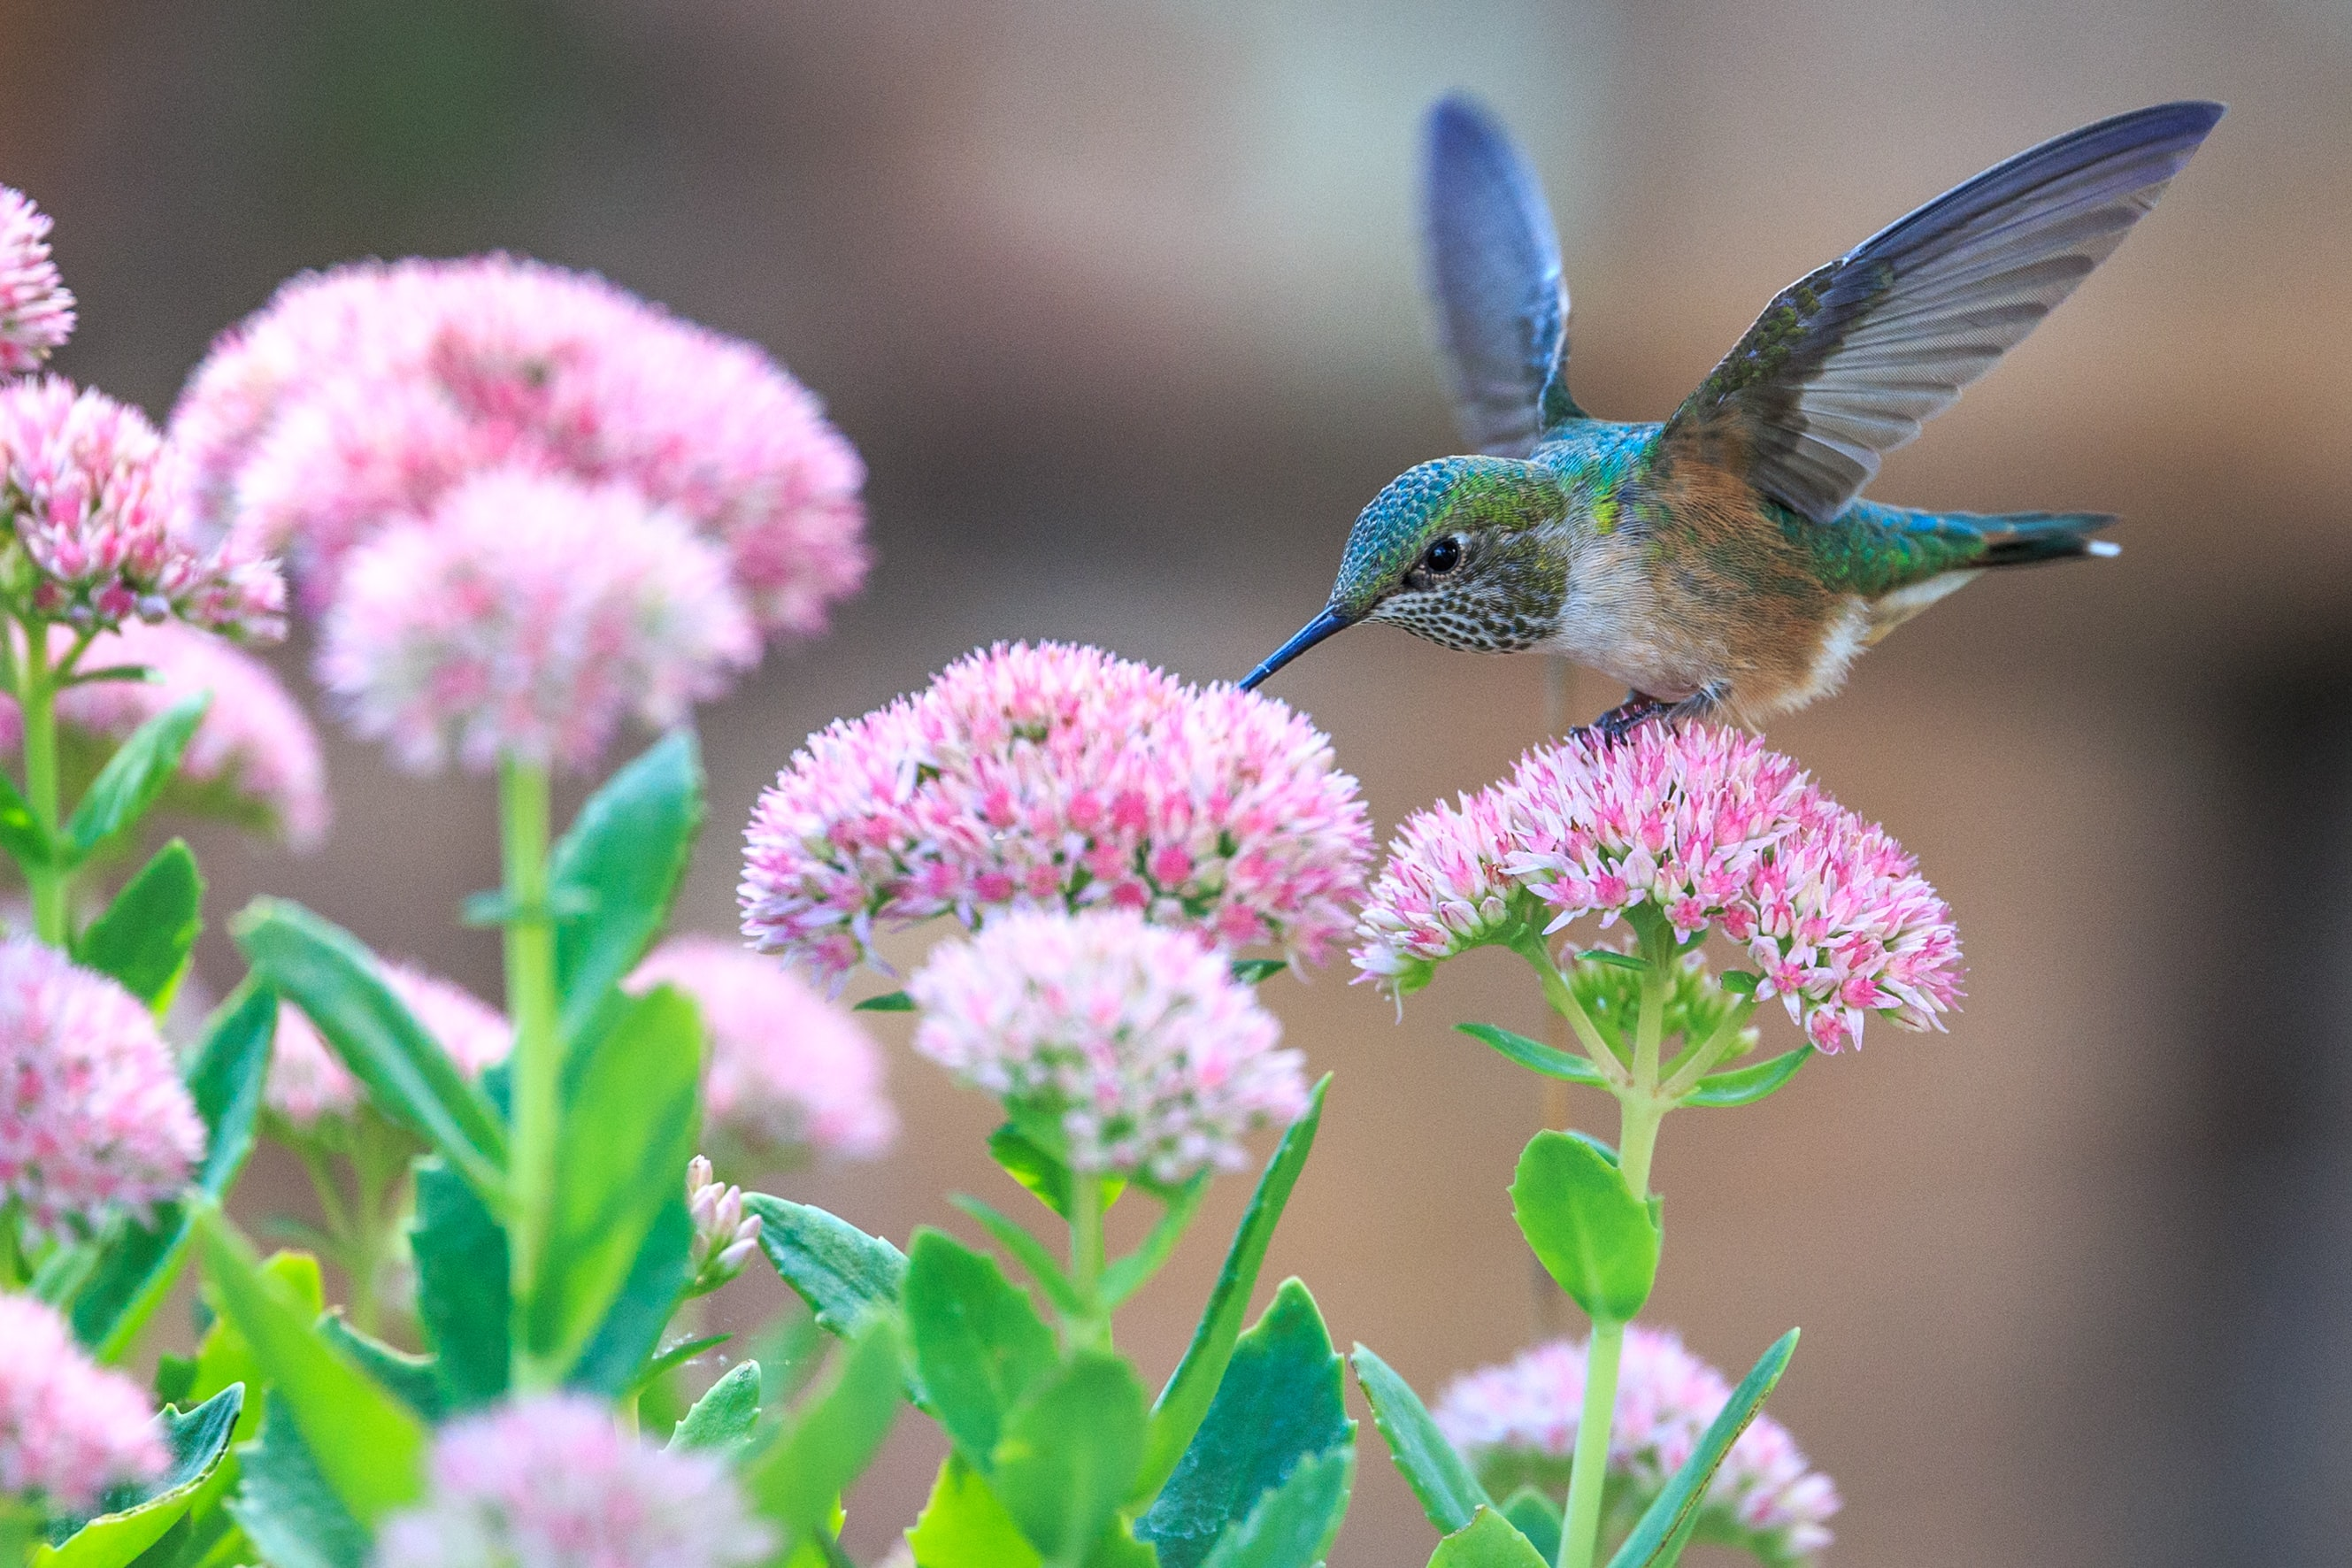 Hummingbird landing on pink flower with green stem